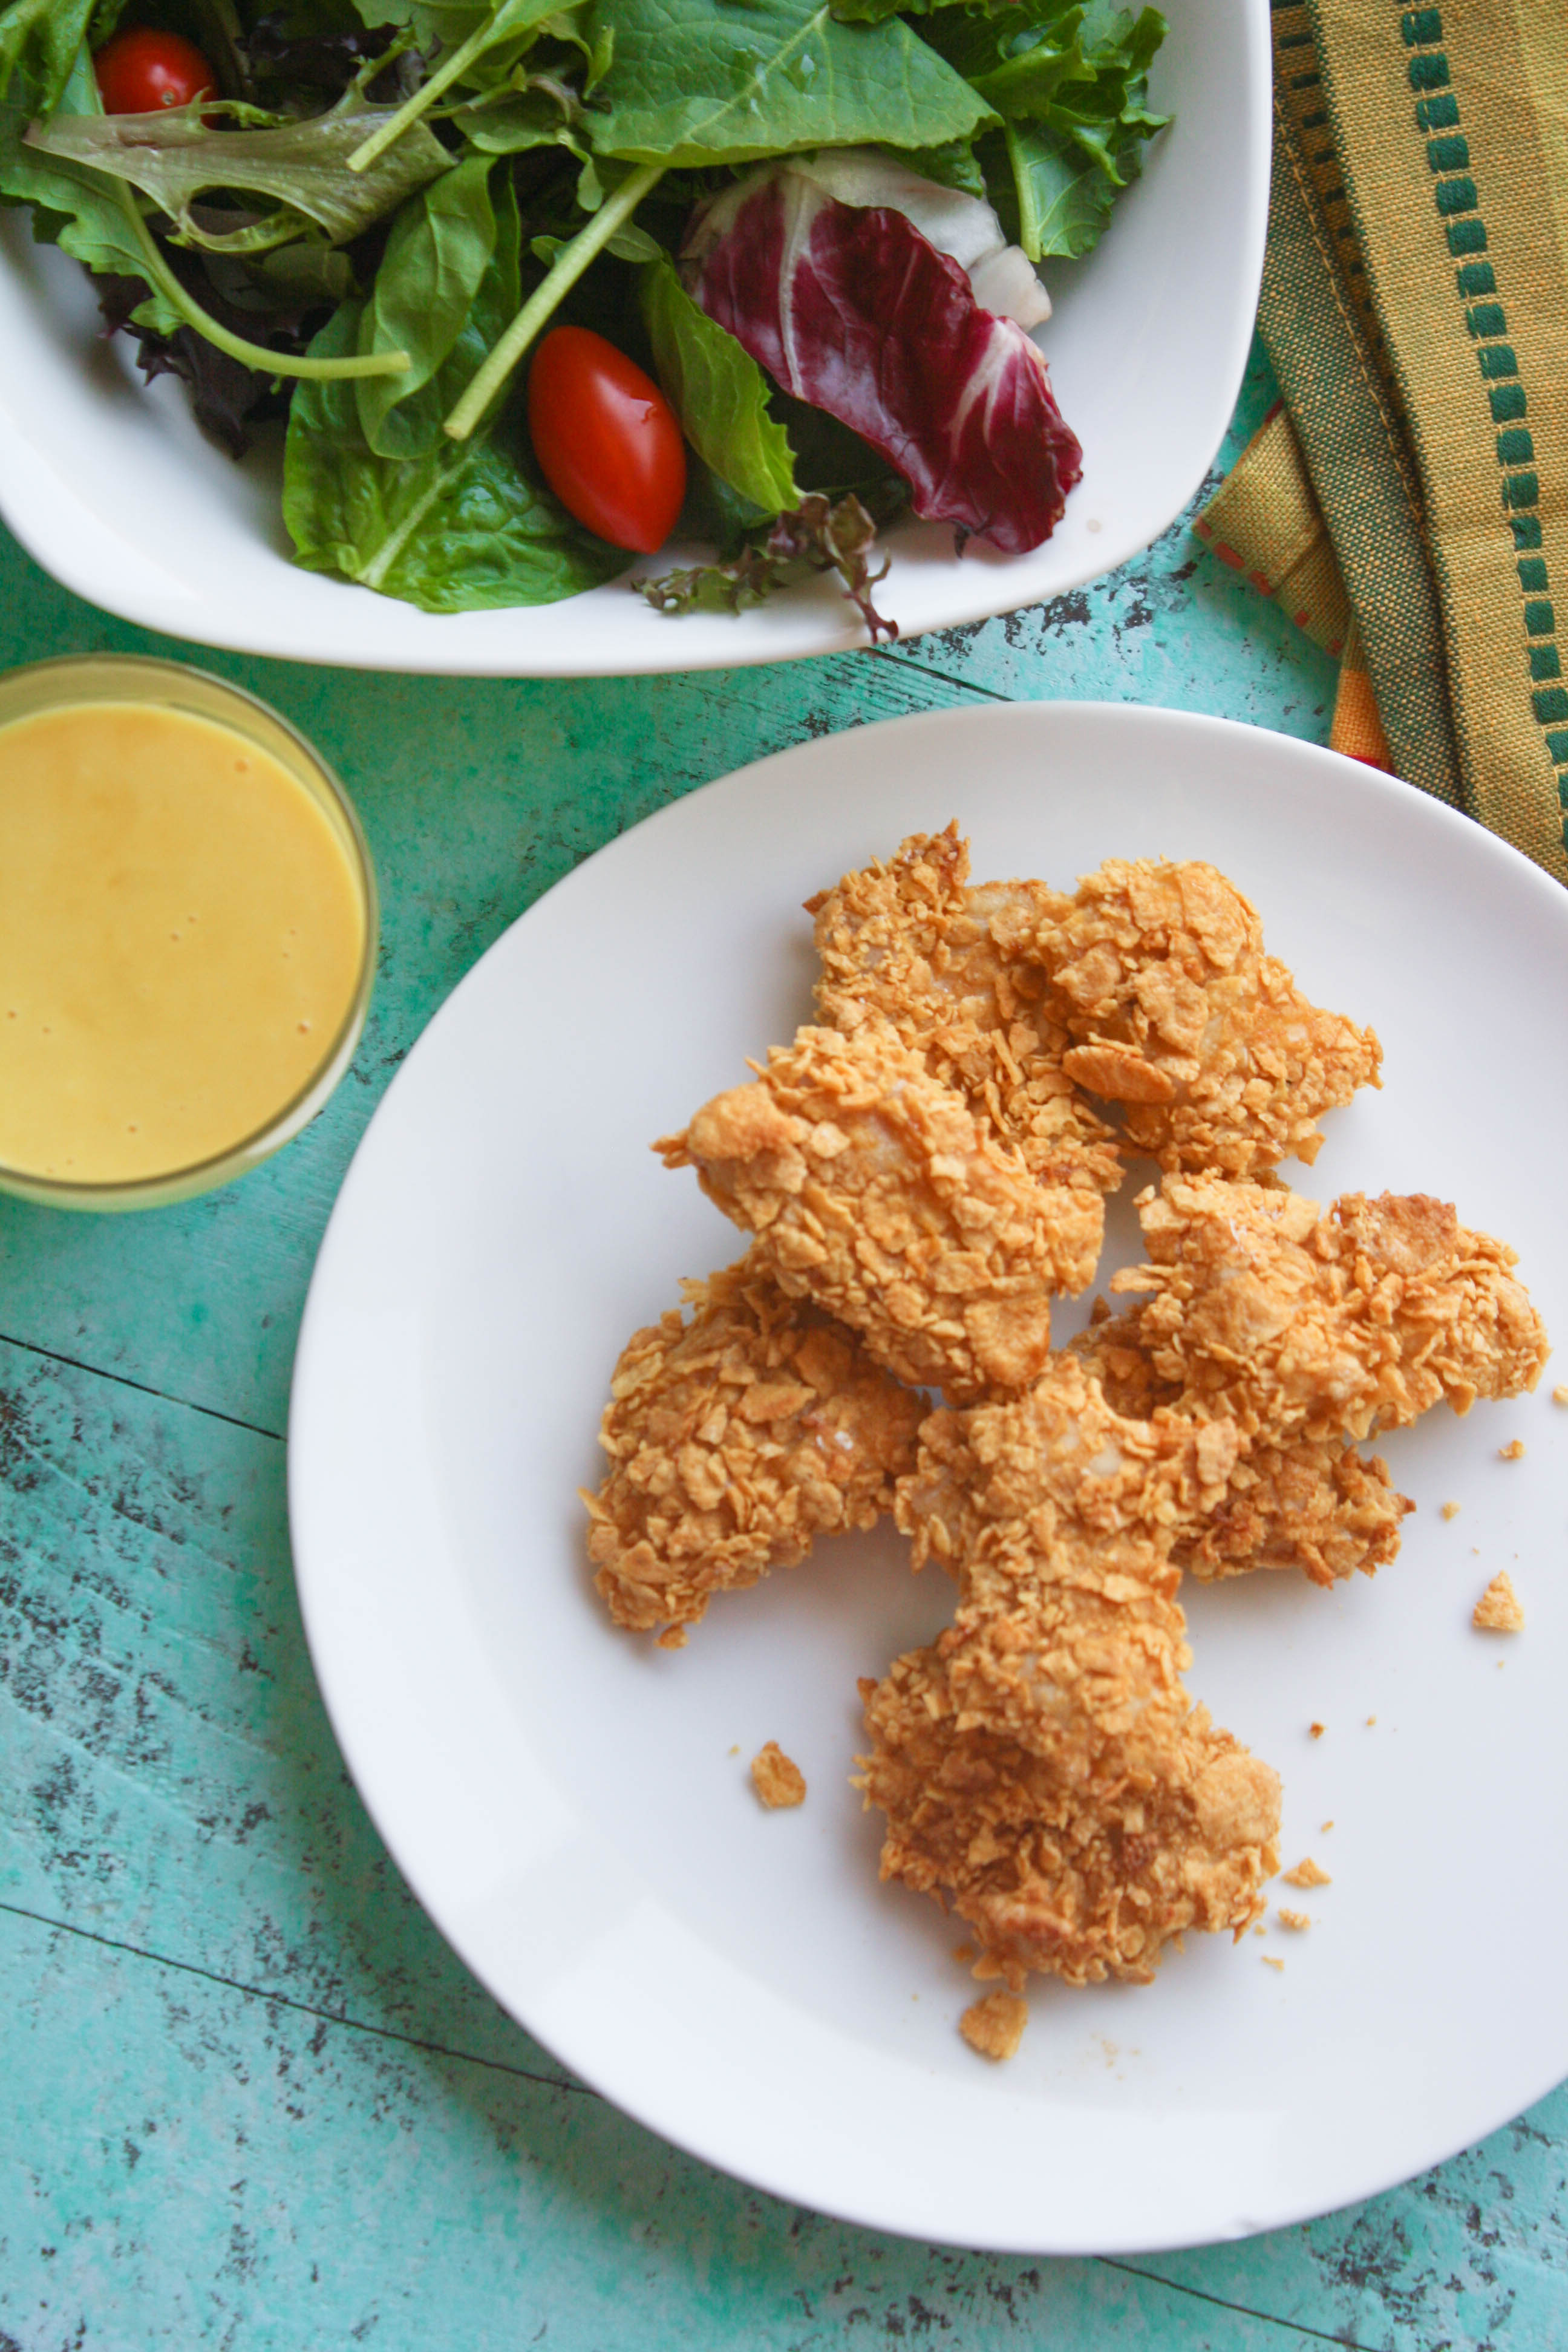 Crunchy Oven Baked Chicken Nuggets with Honey Mustard Sauce makes a fun meal. Try them for dinner soon!